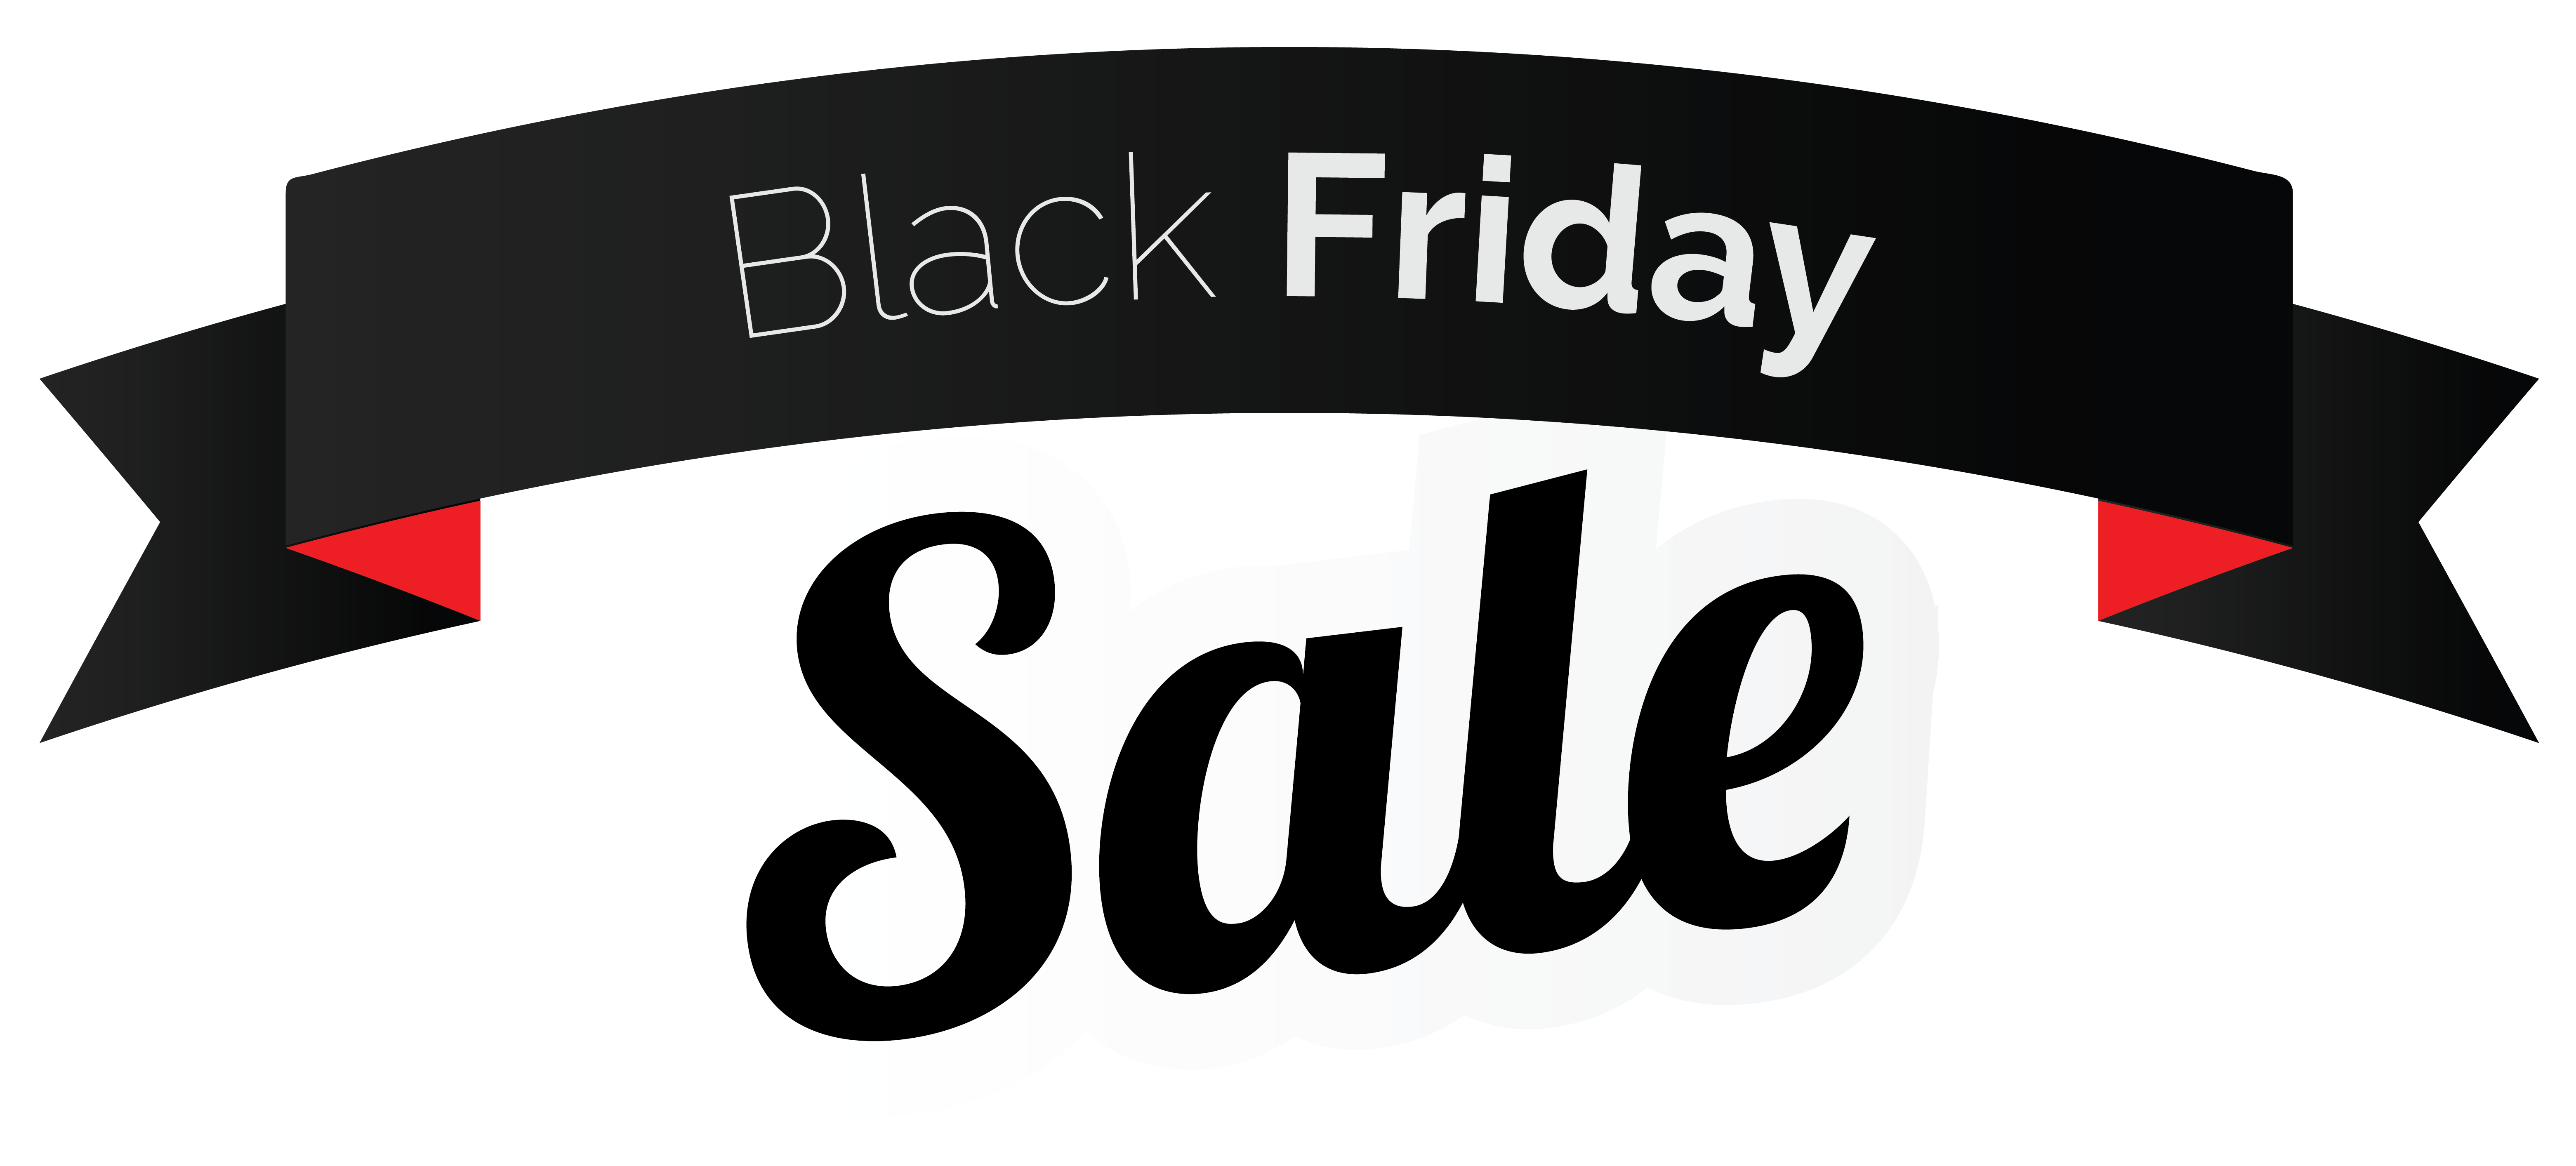 Get free Black Friday coupons, coupon codes, deals, and.